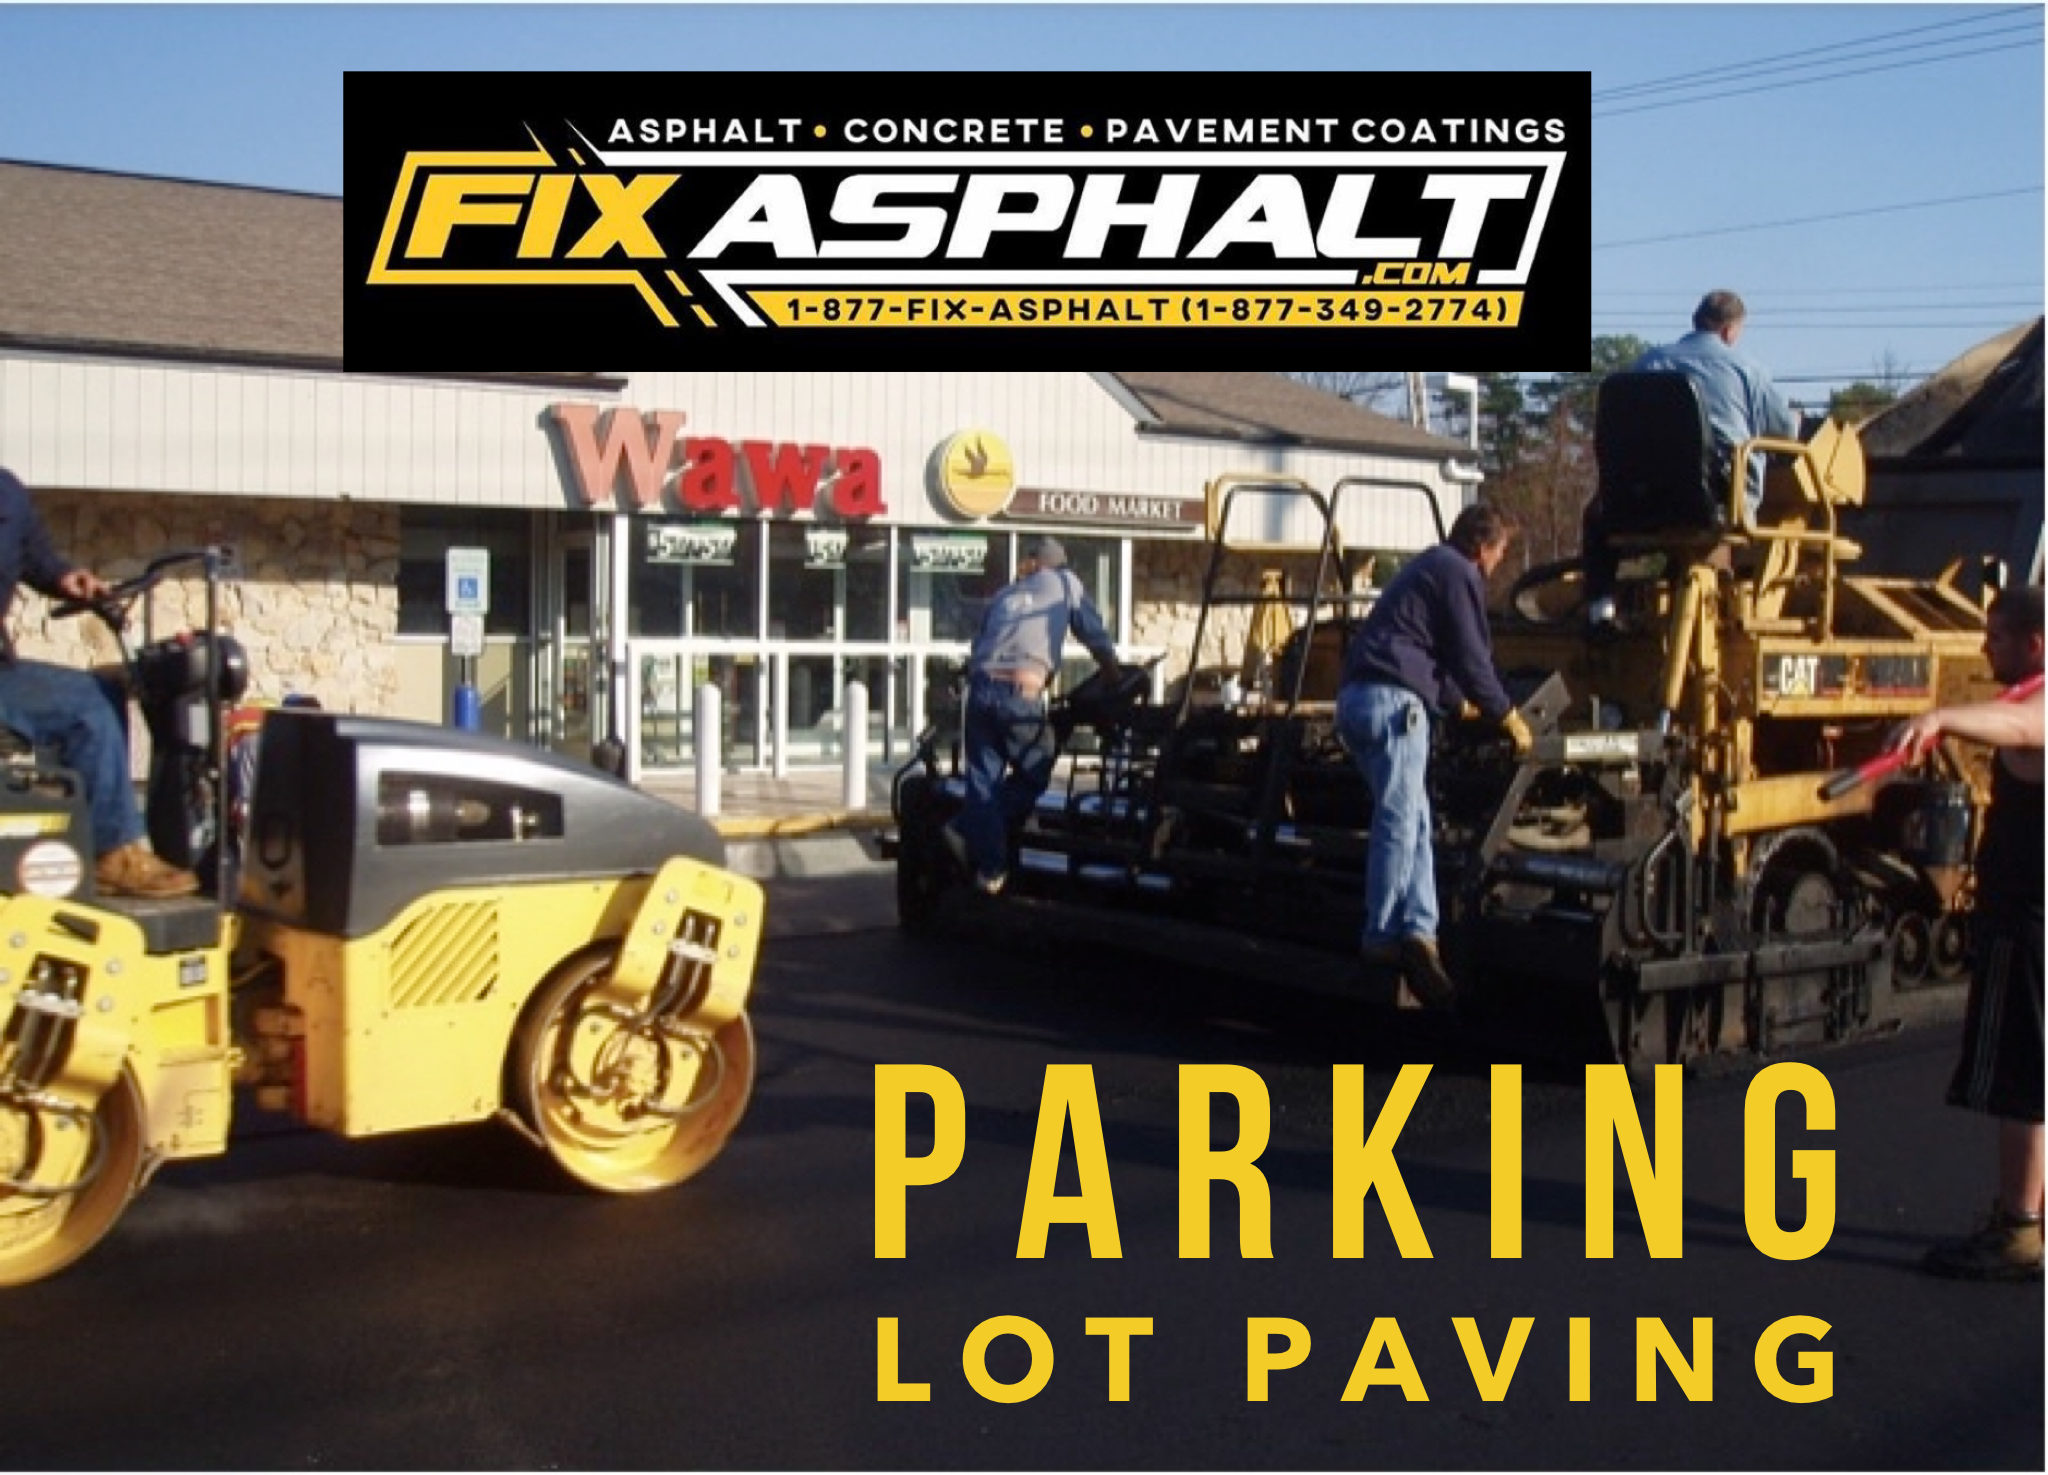 DE Parking Lot Paving Contractor